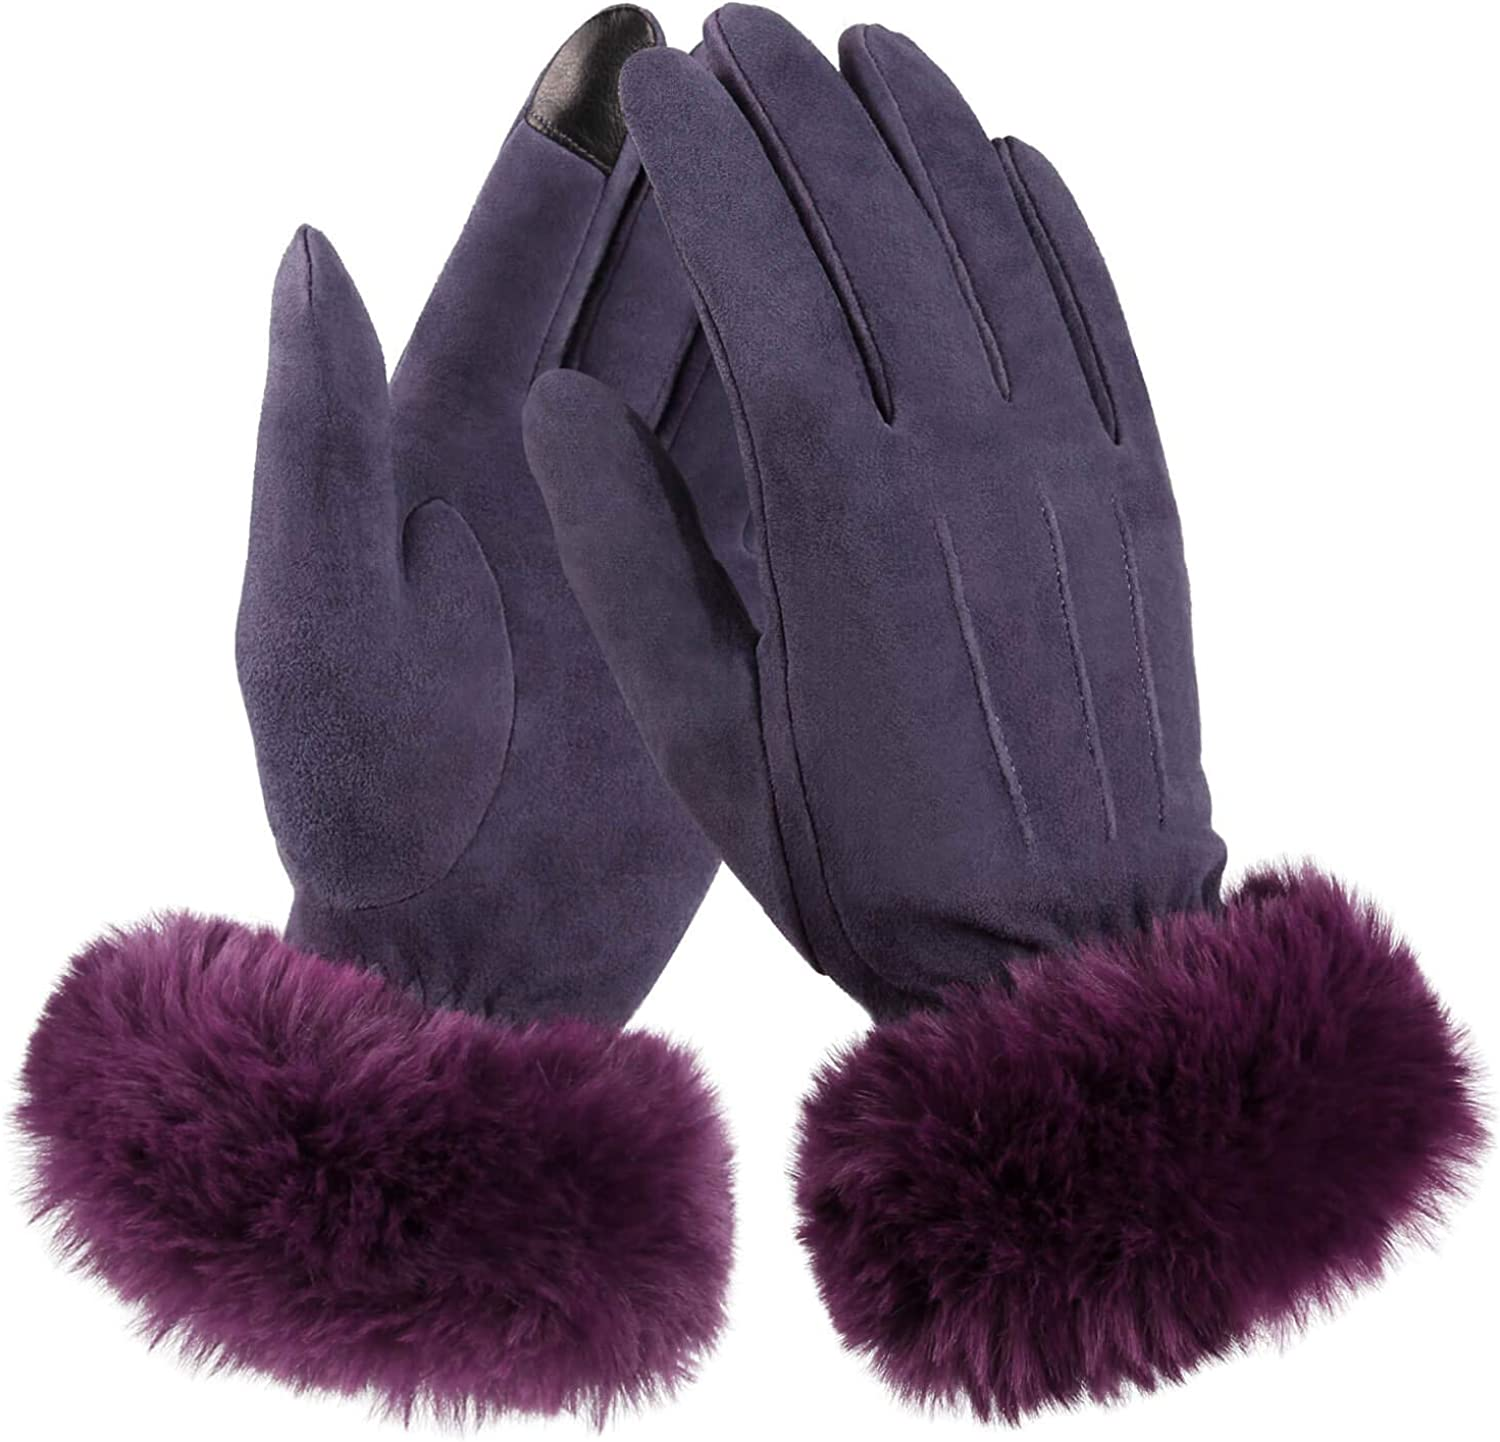 Winter Touch Screen Gloves Deerskin Leather Thermal Cashmere Warm Gift for Women